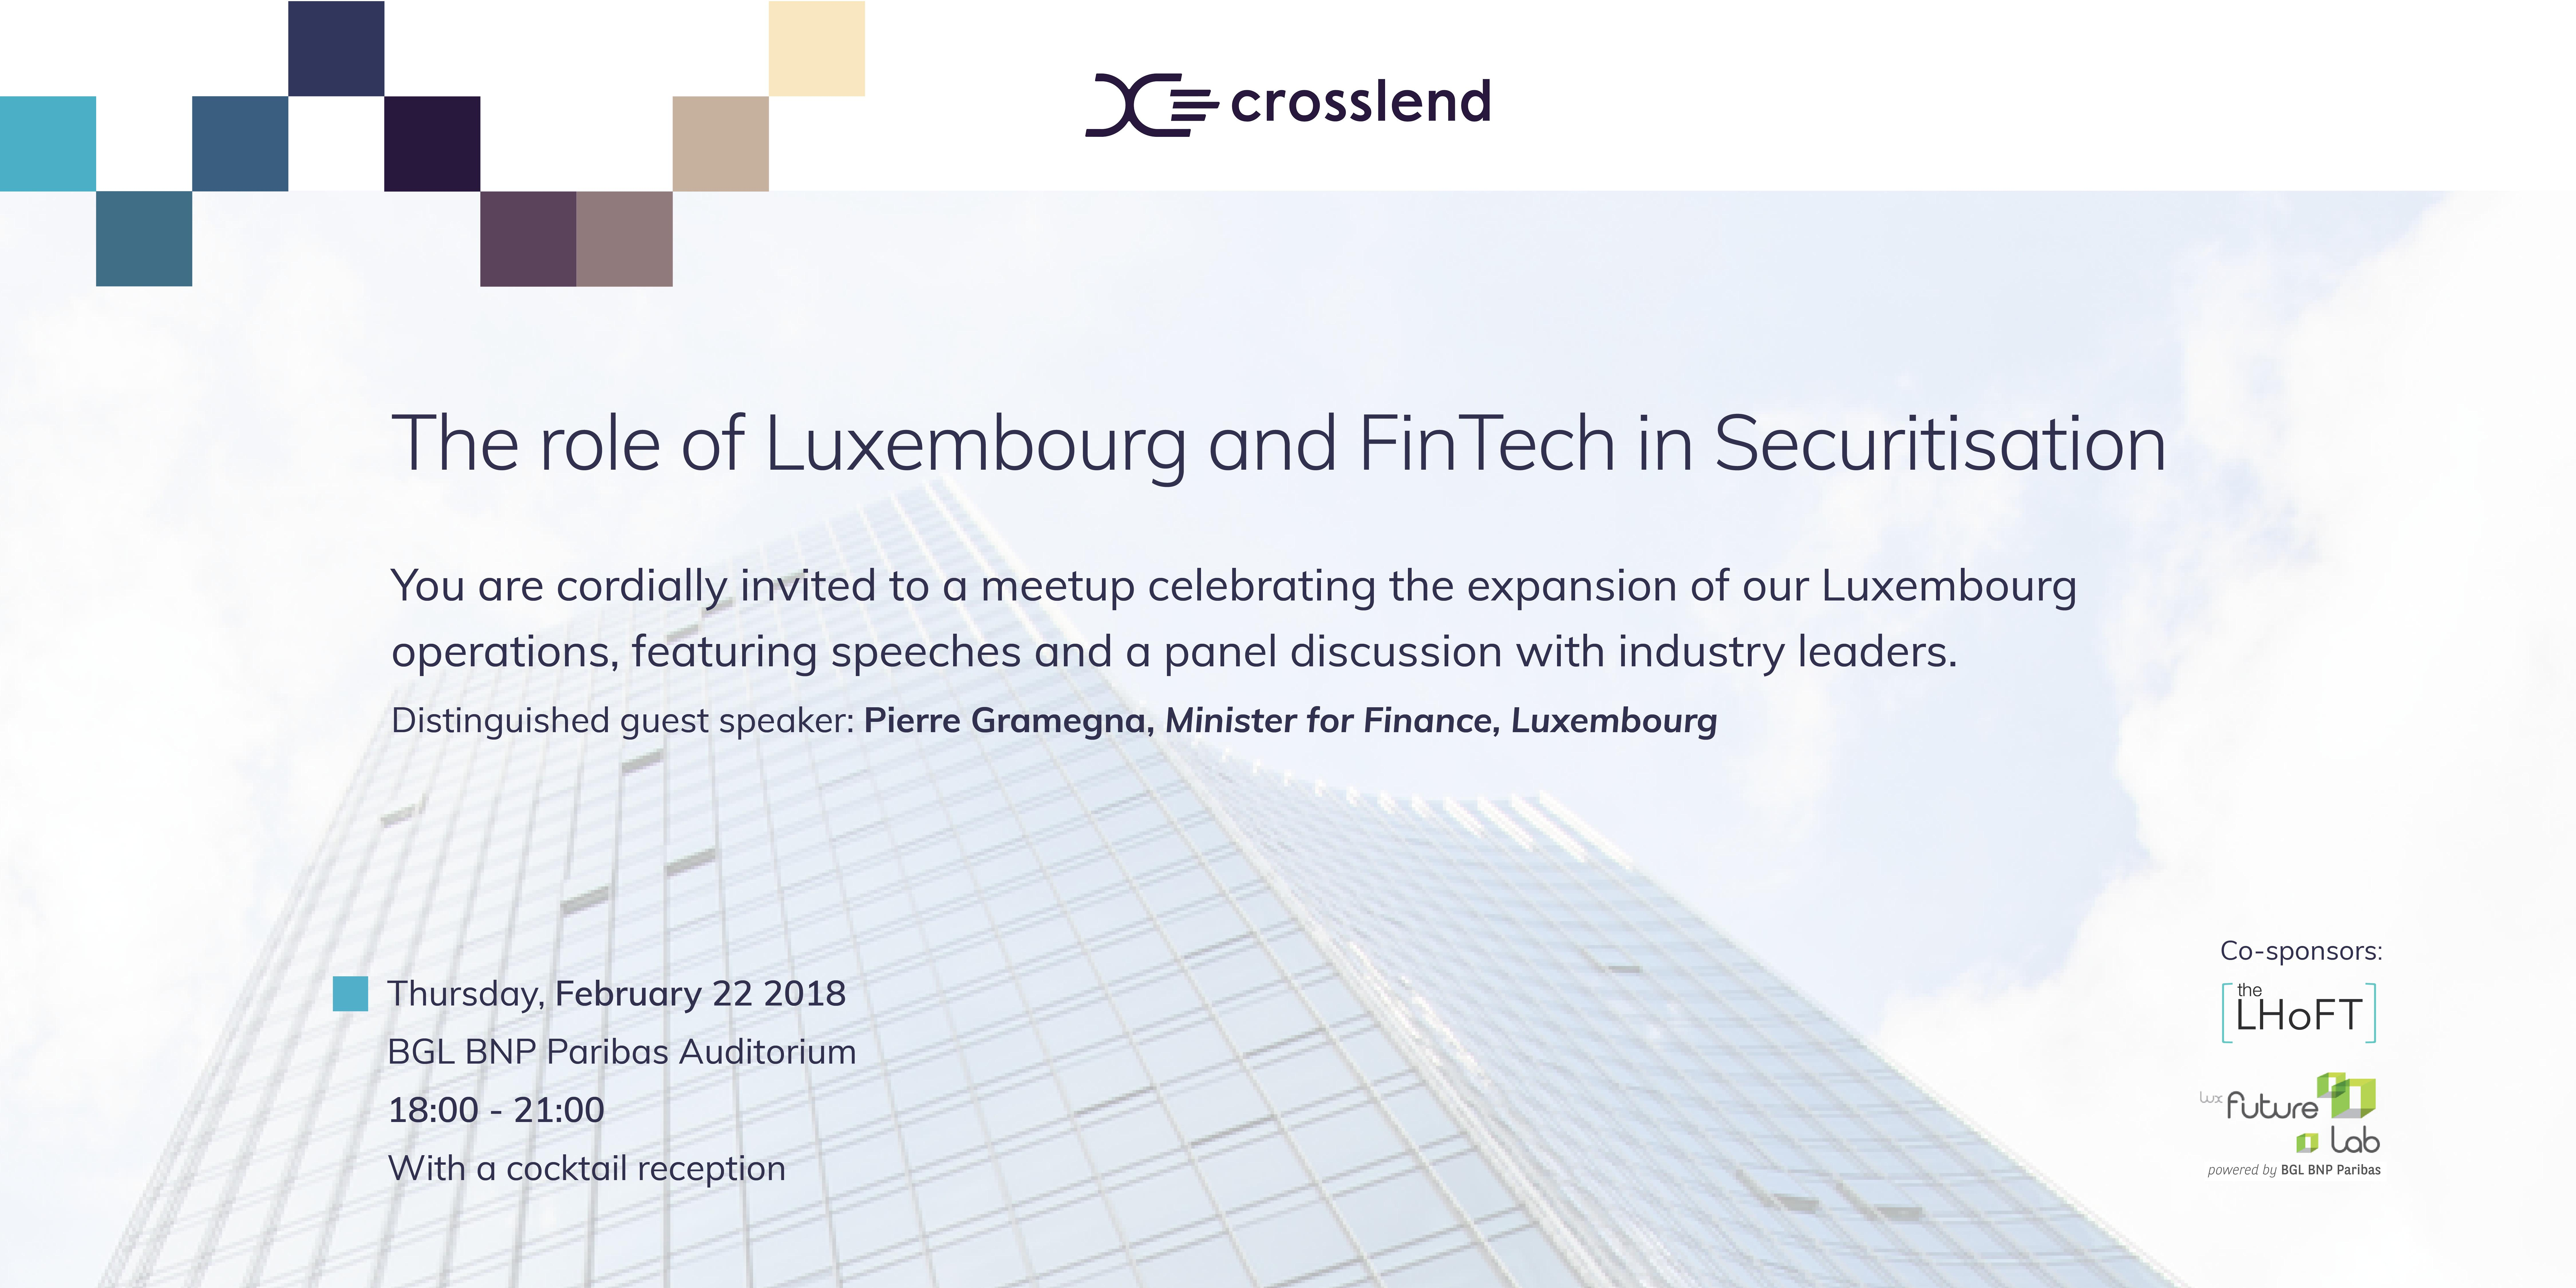 CrossLend launch event: the role of Luxembourg & FinTech in